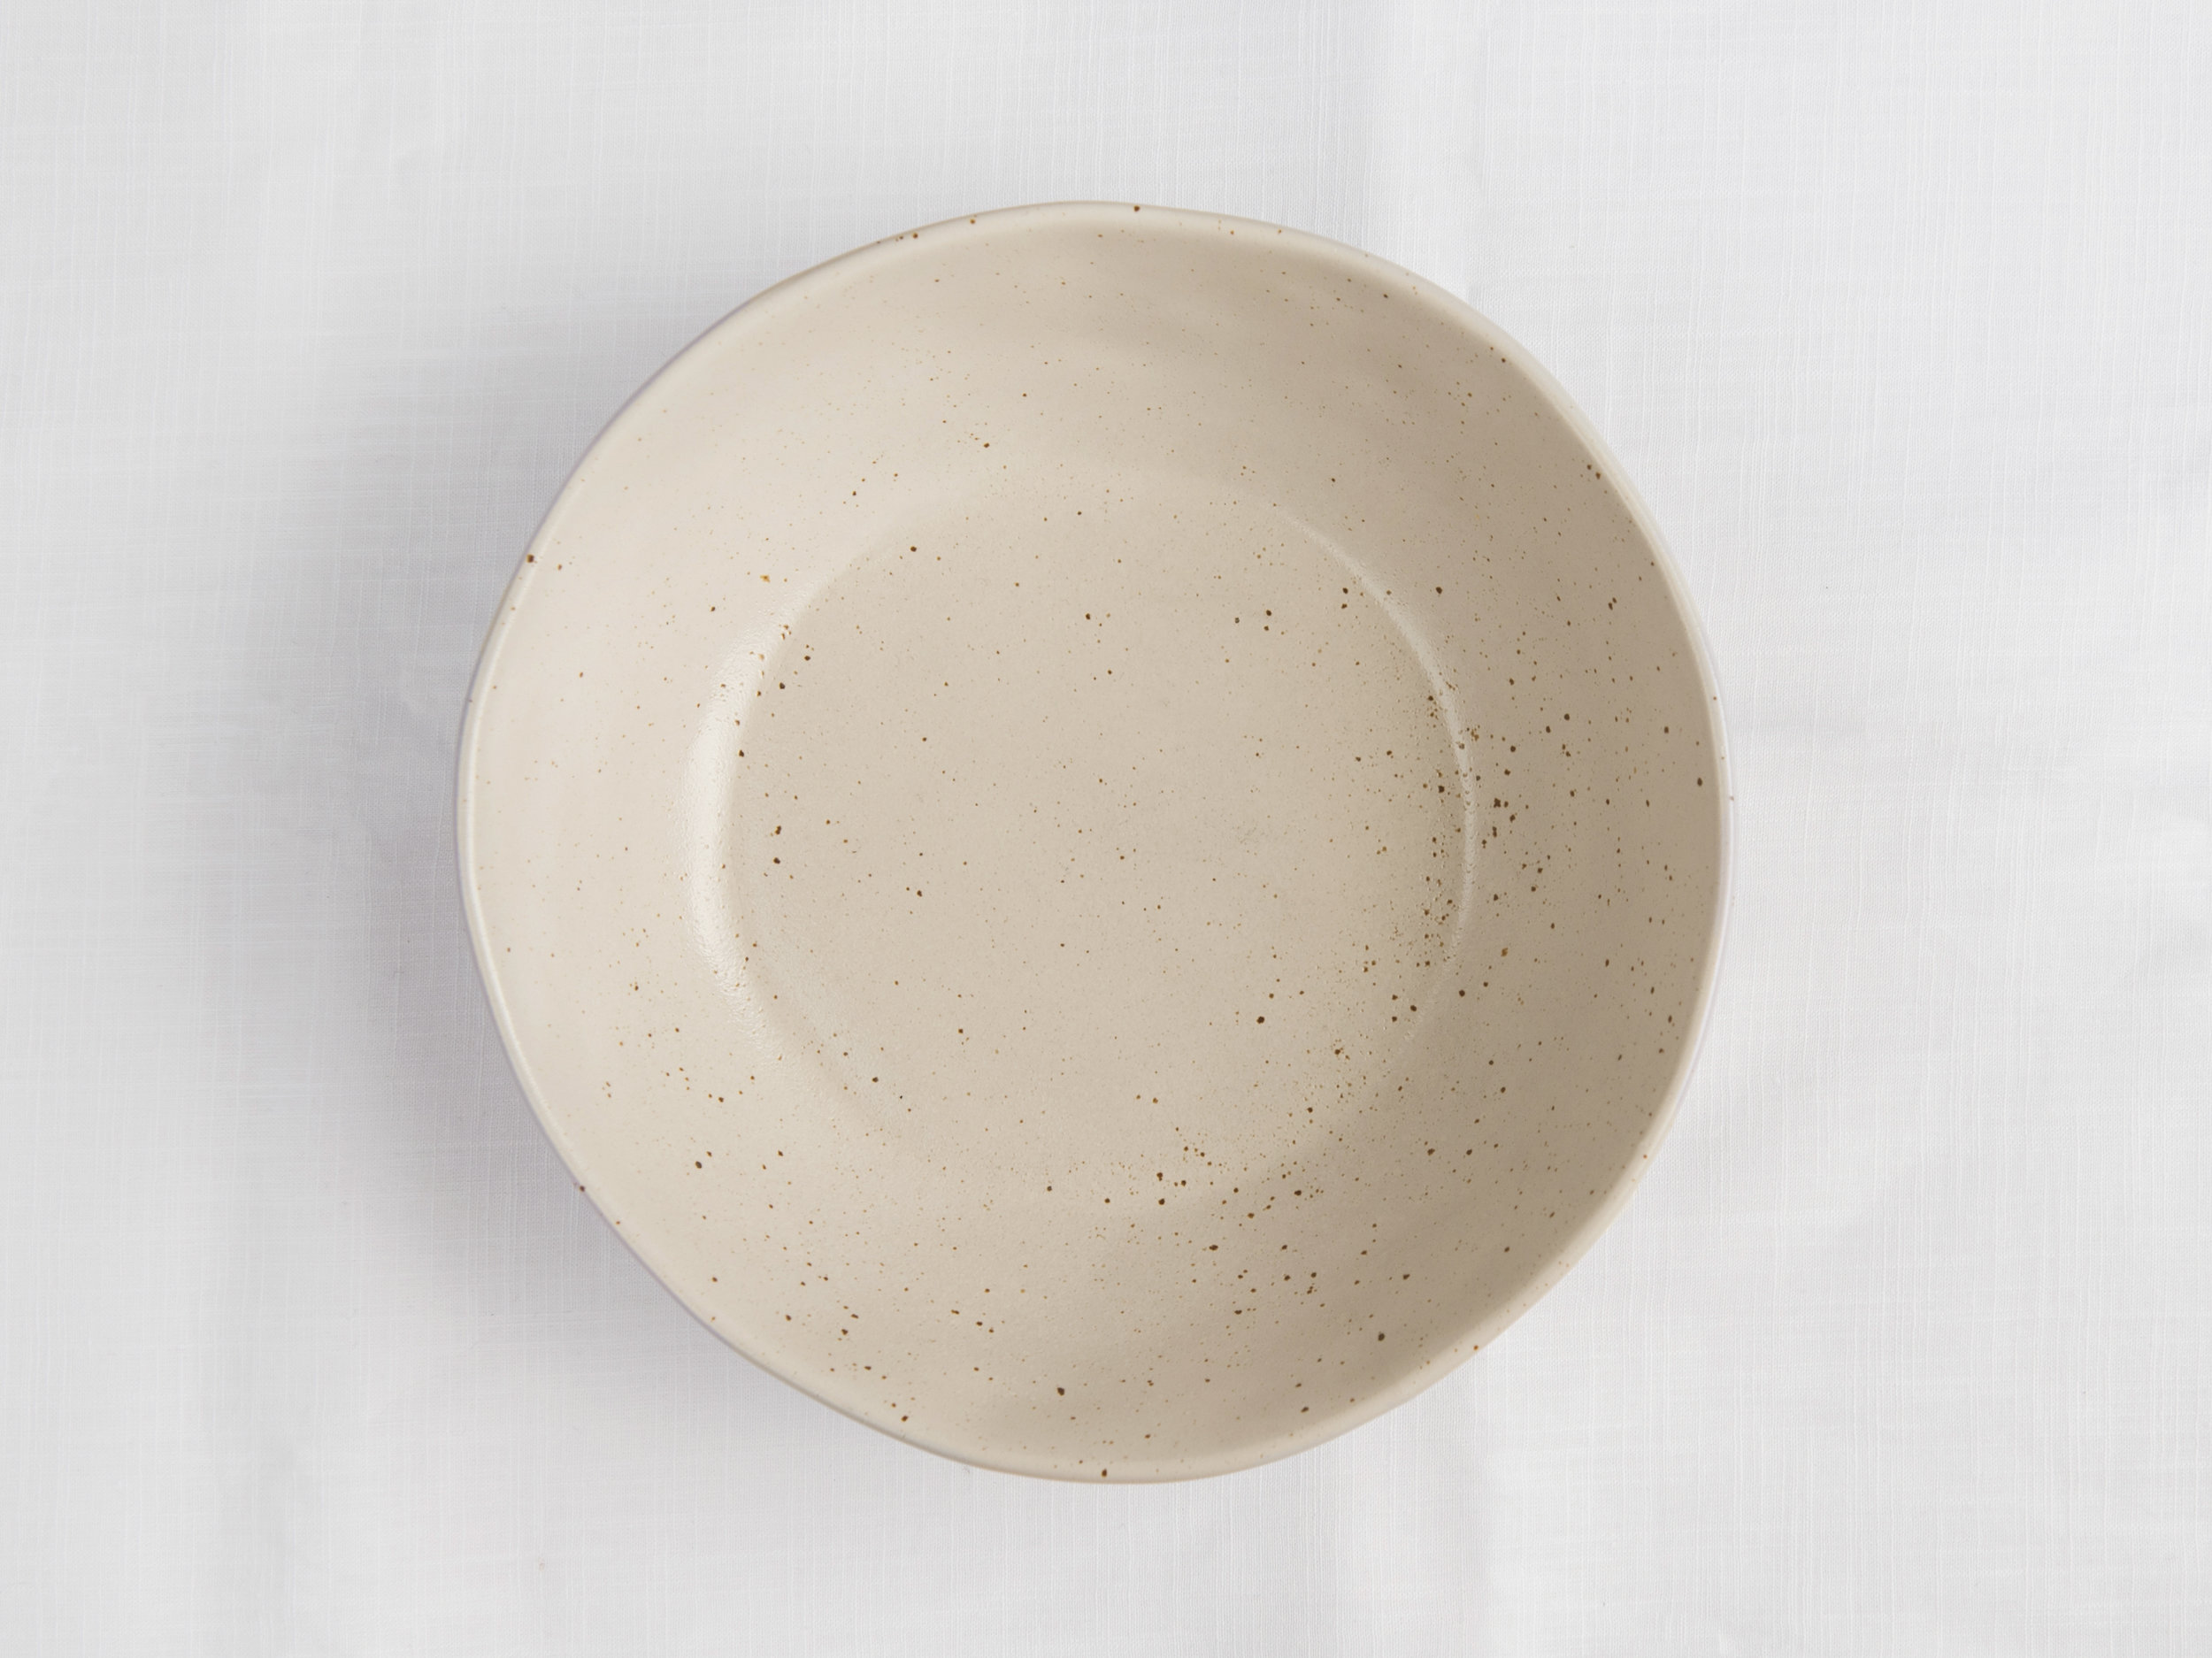 Earth Bowl - Natural GV1_3344 A.jpg